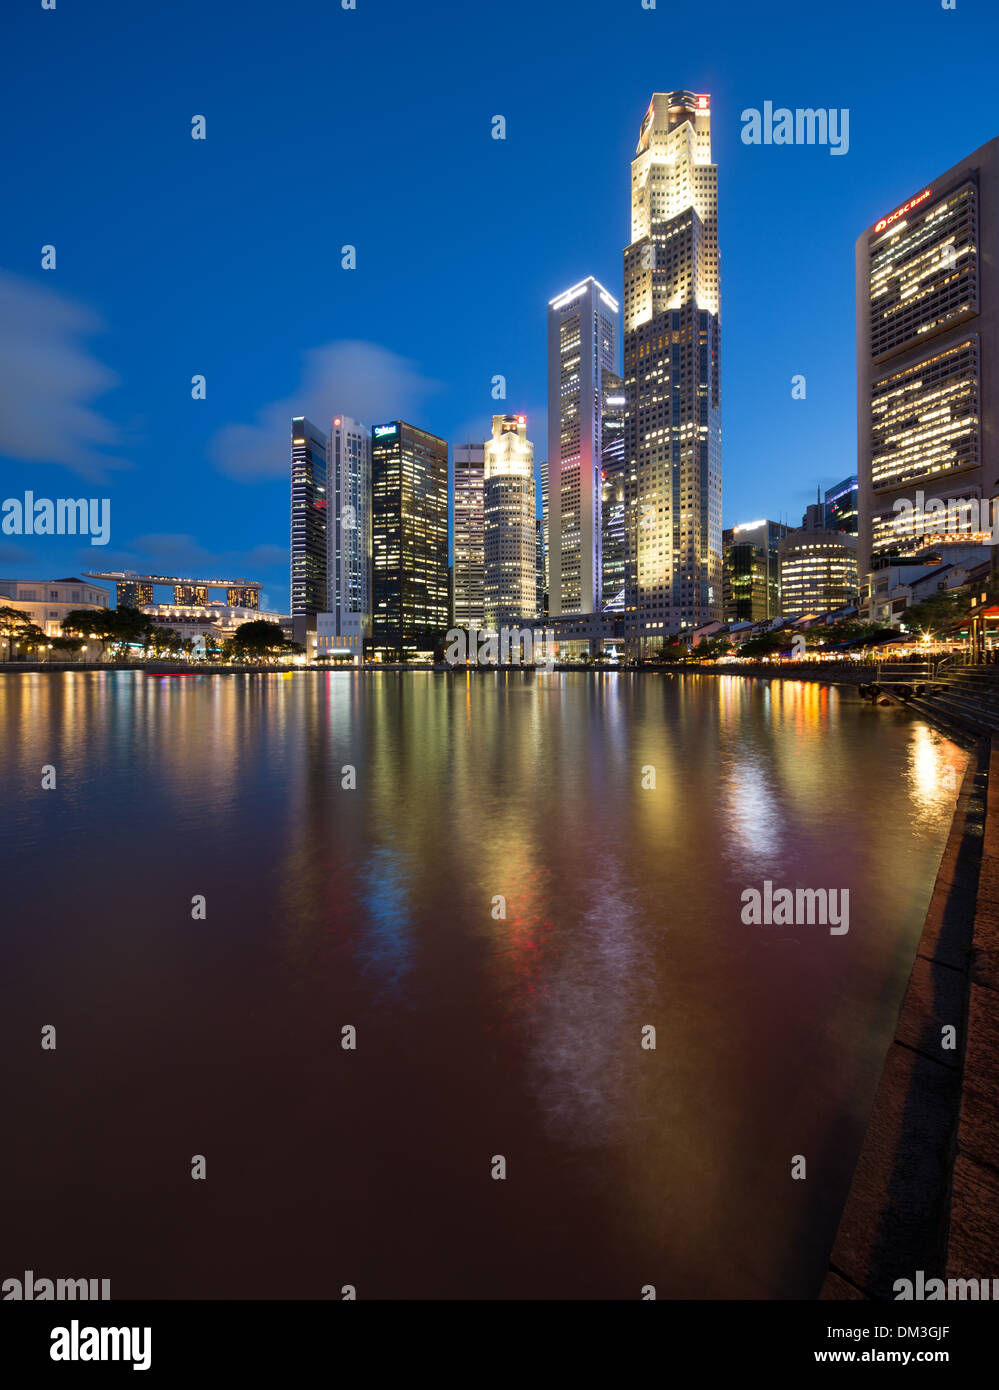 the Central Business District at night from Boat Quay, Singapore - Stock Image